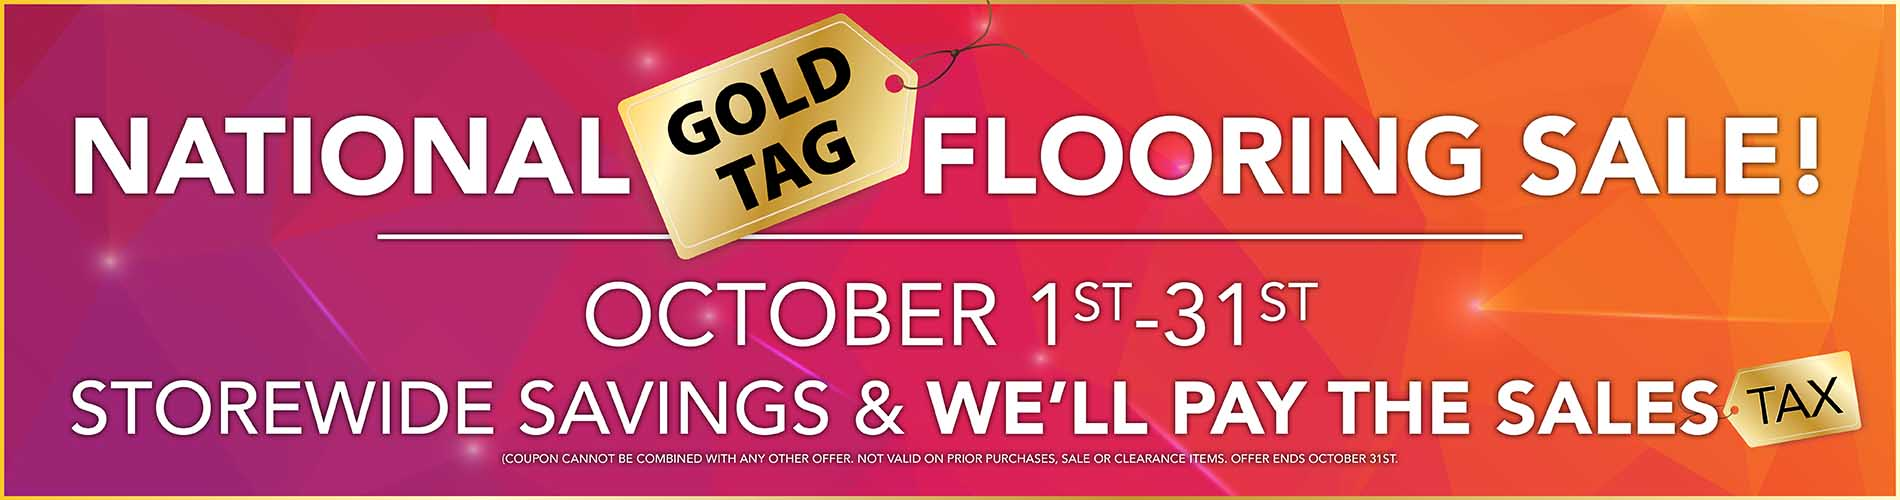 Pay no Sales Tax during our National Gold Tag Flooring Sale at Murley's Floor Covering in Kennewick, WA